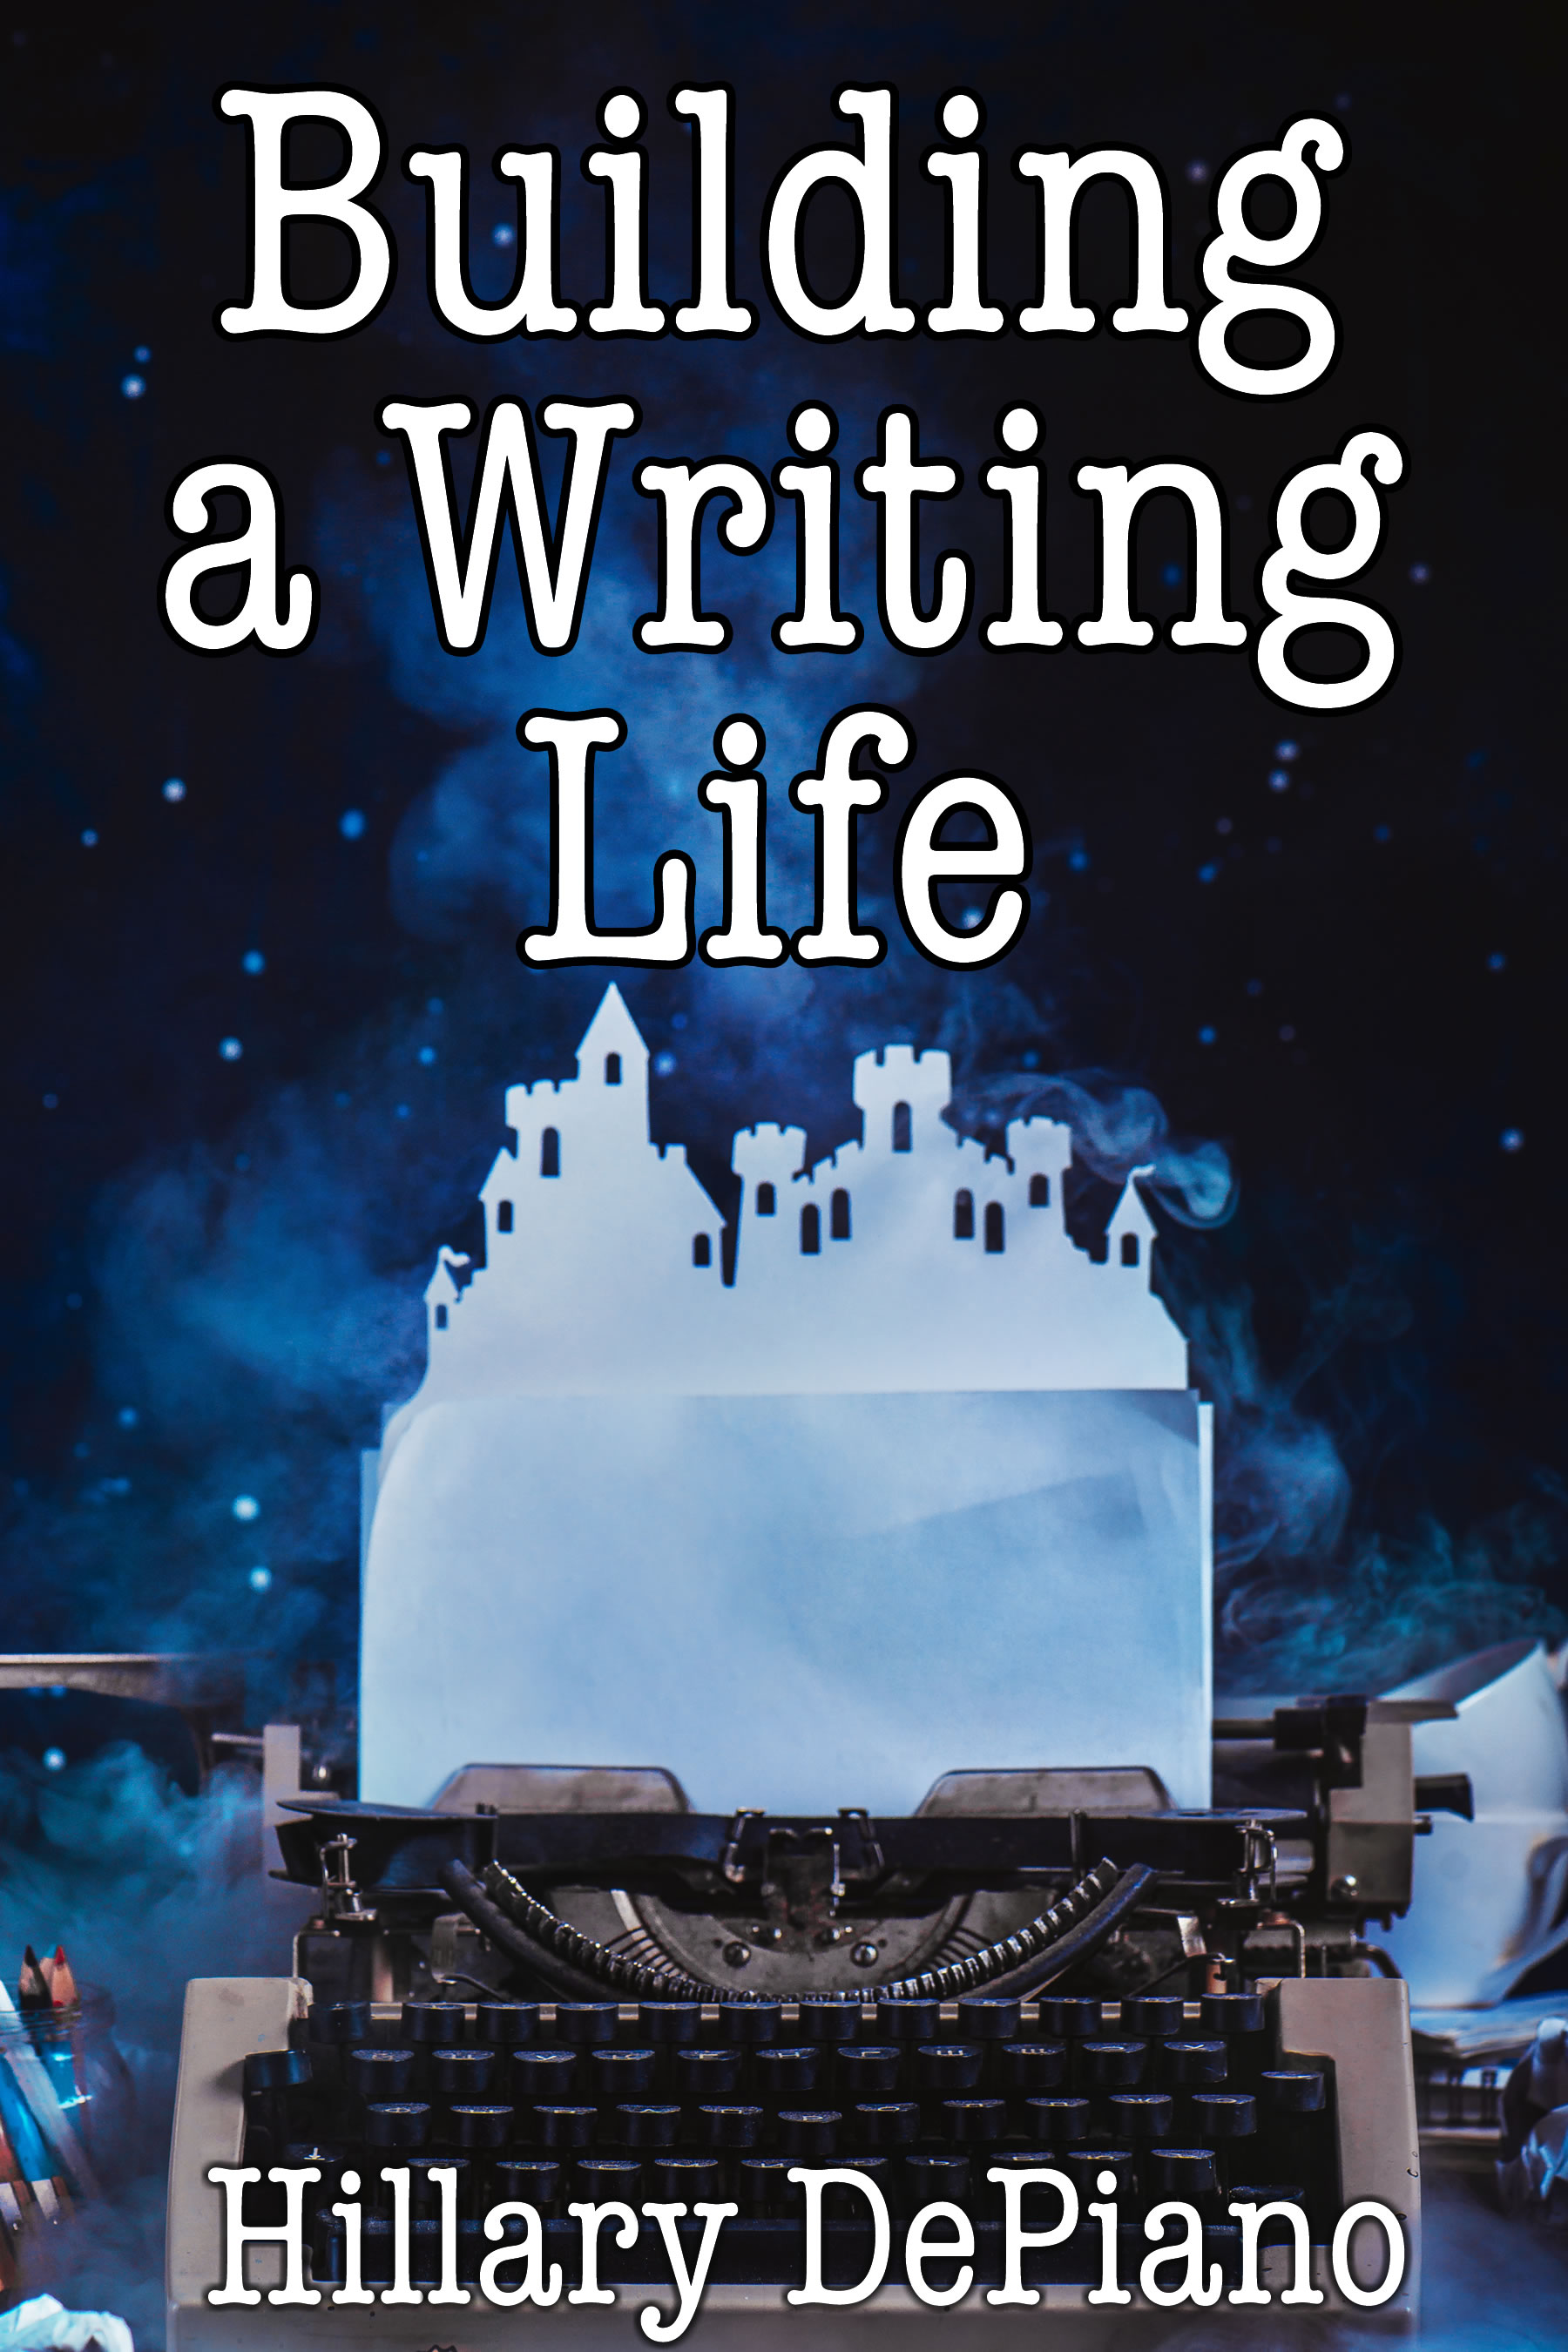 Building a Writing Life by Hillary DePiano